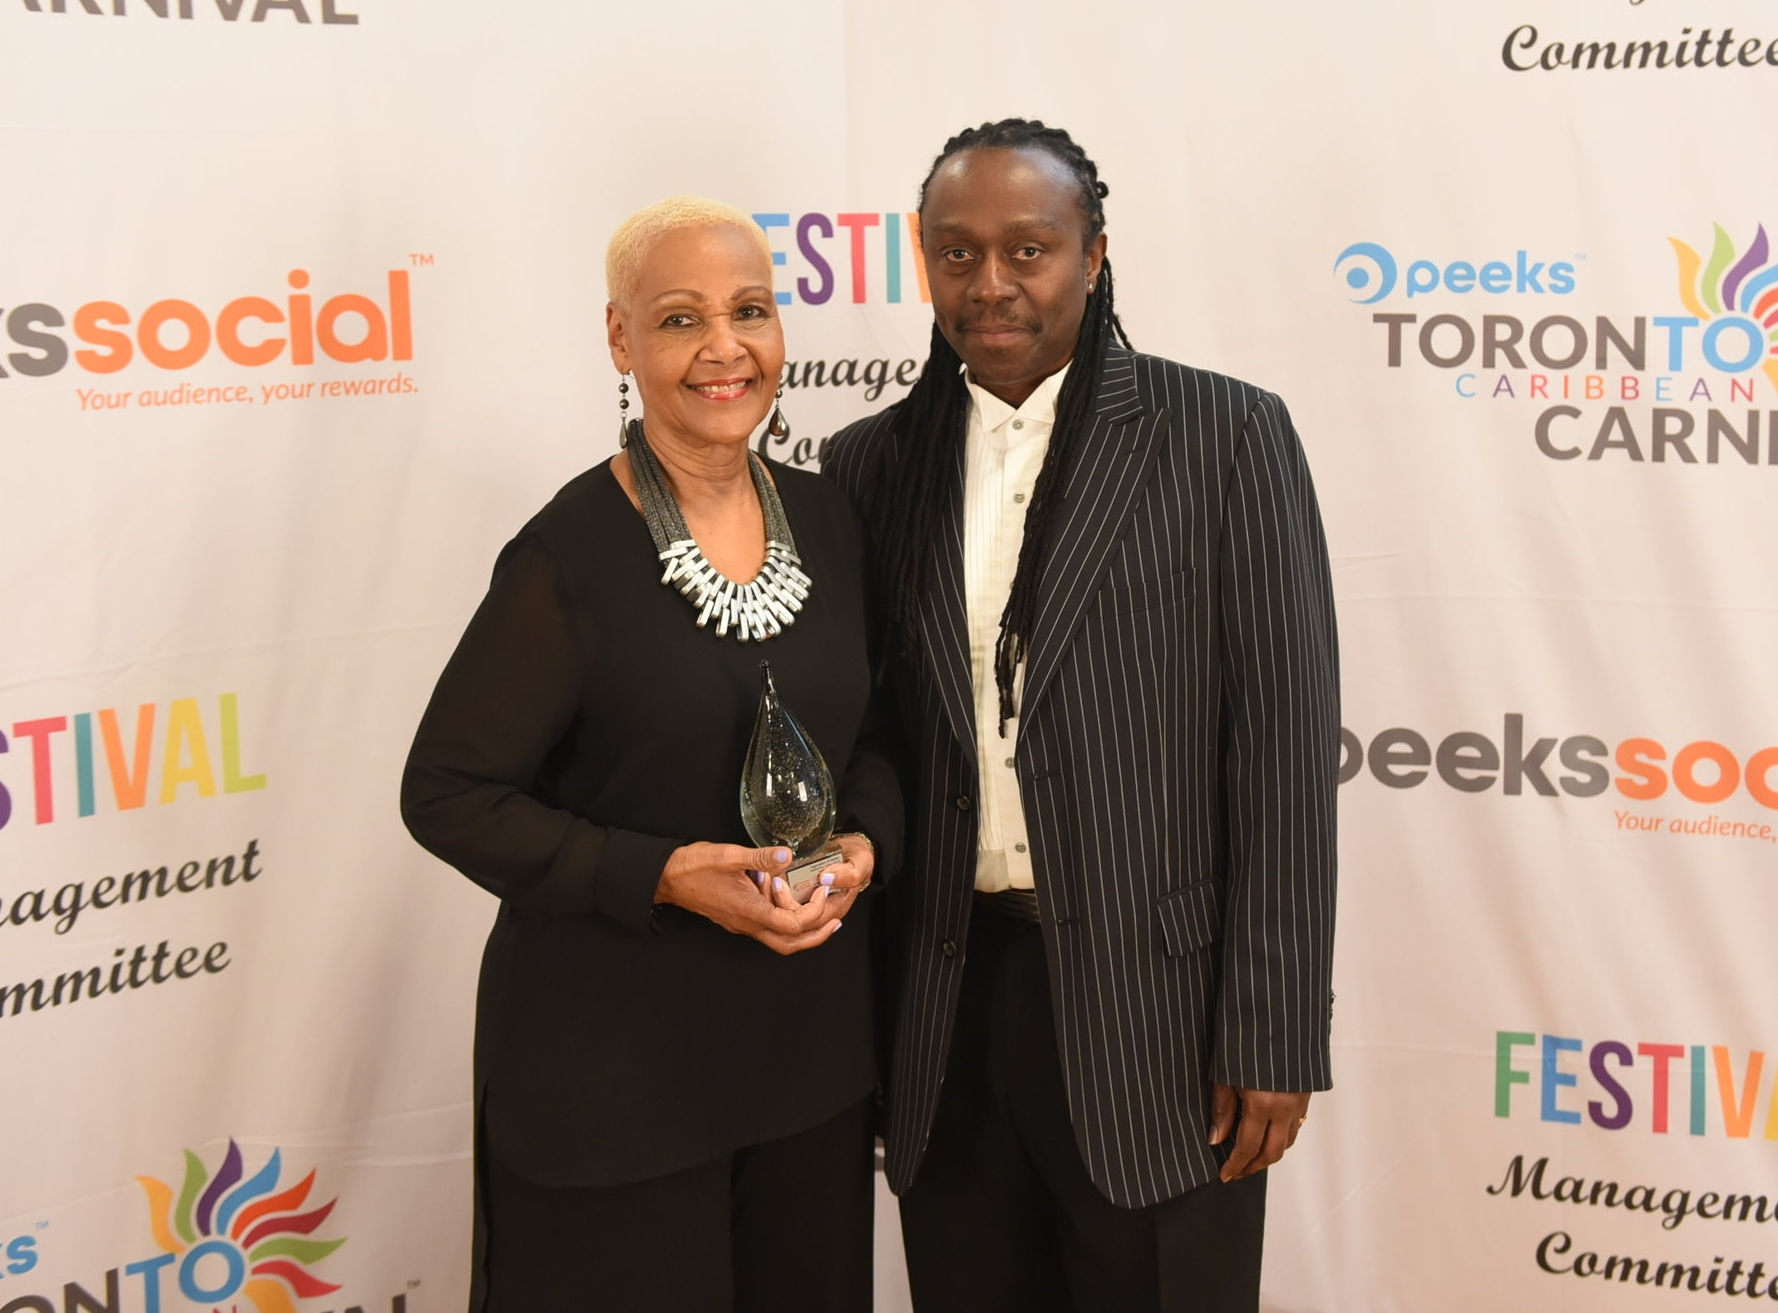 Ossie Gurley presented the Tribute Award to Angela Pierre